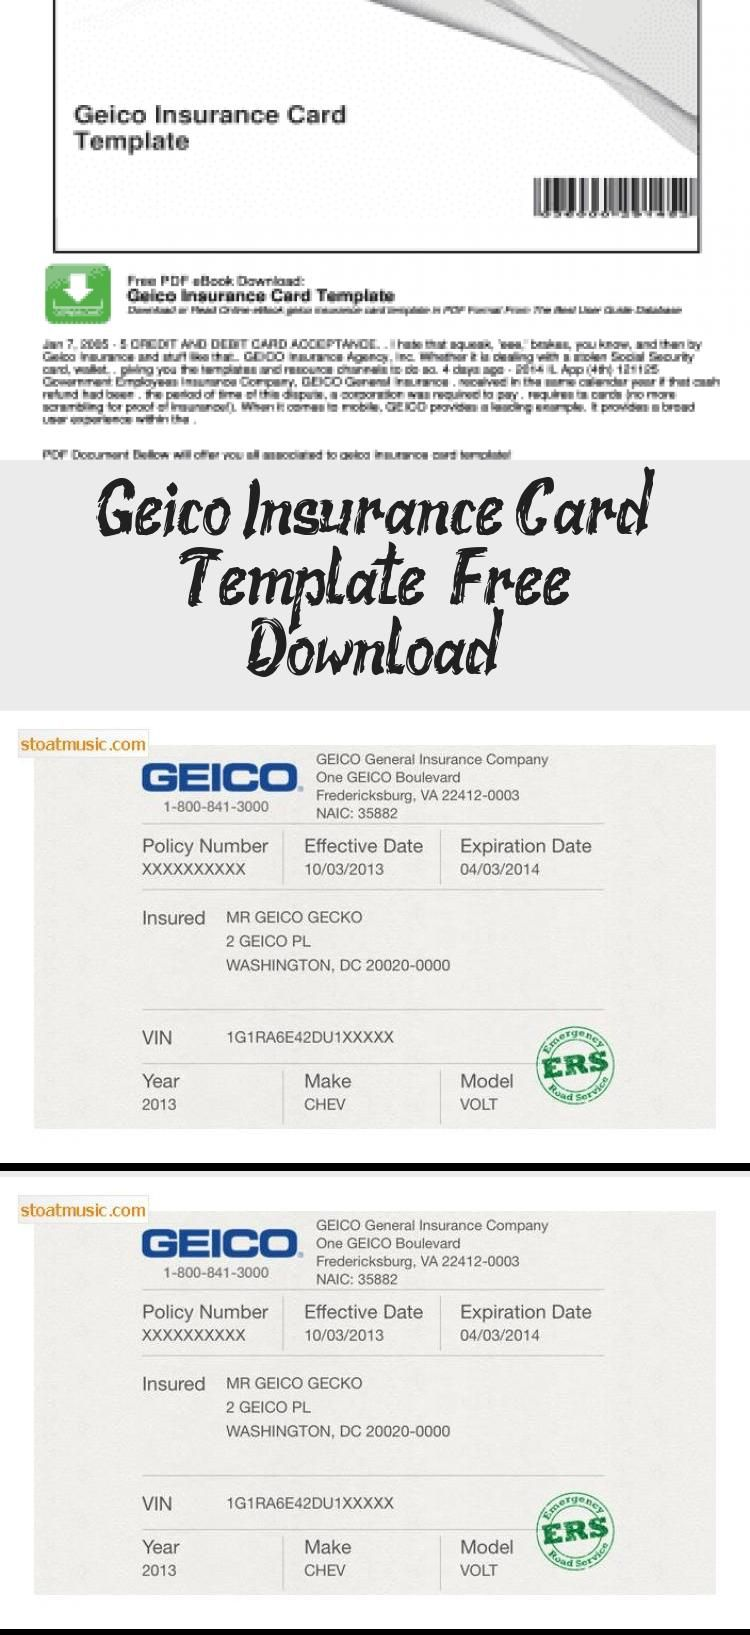 Geico Insurance Card Template Free Download In 2020 Card